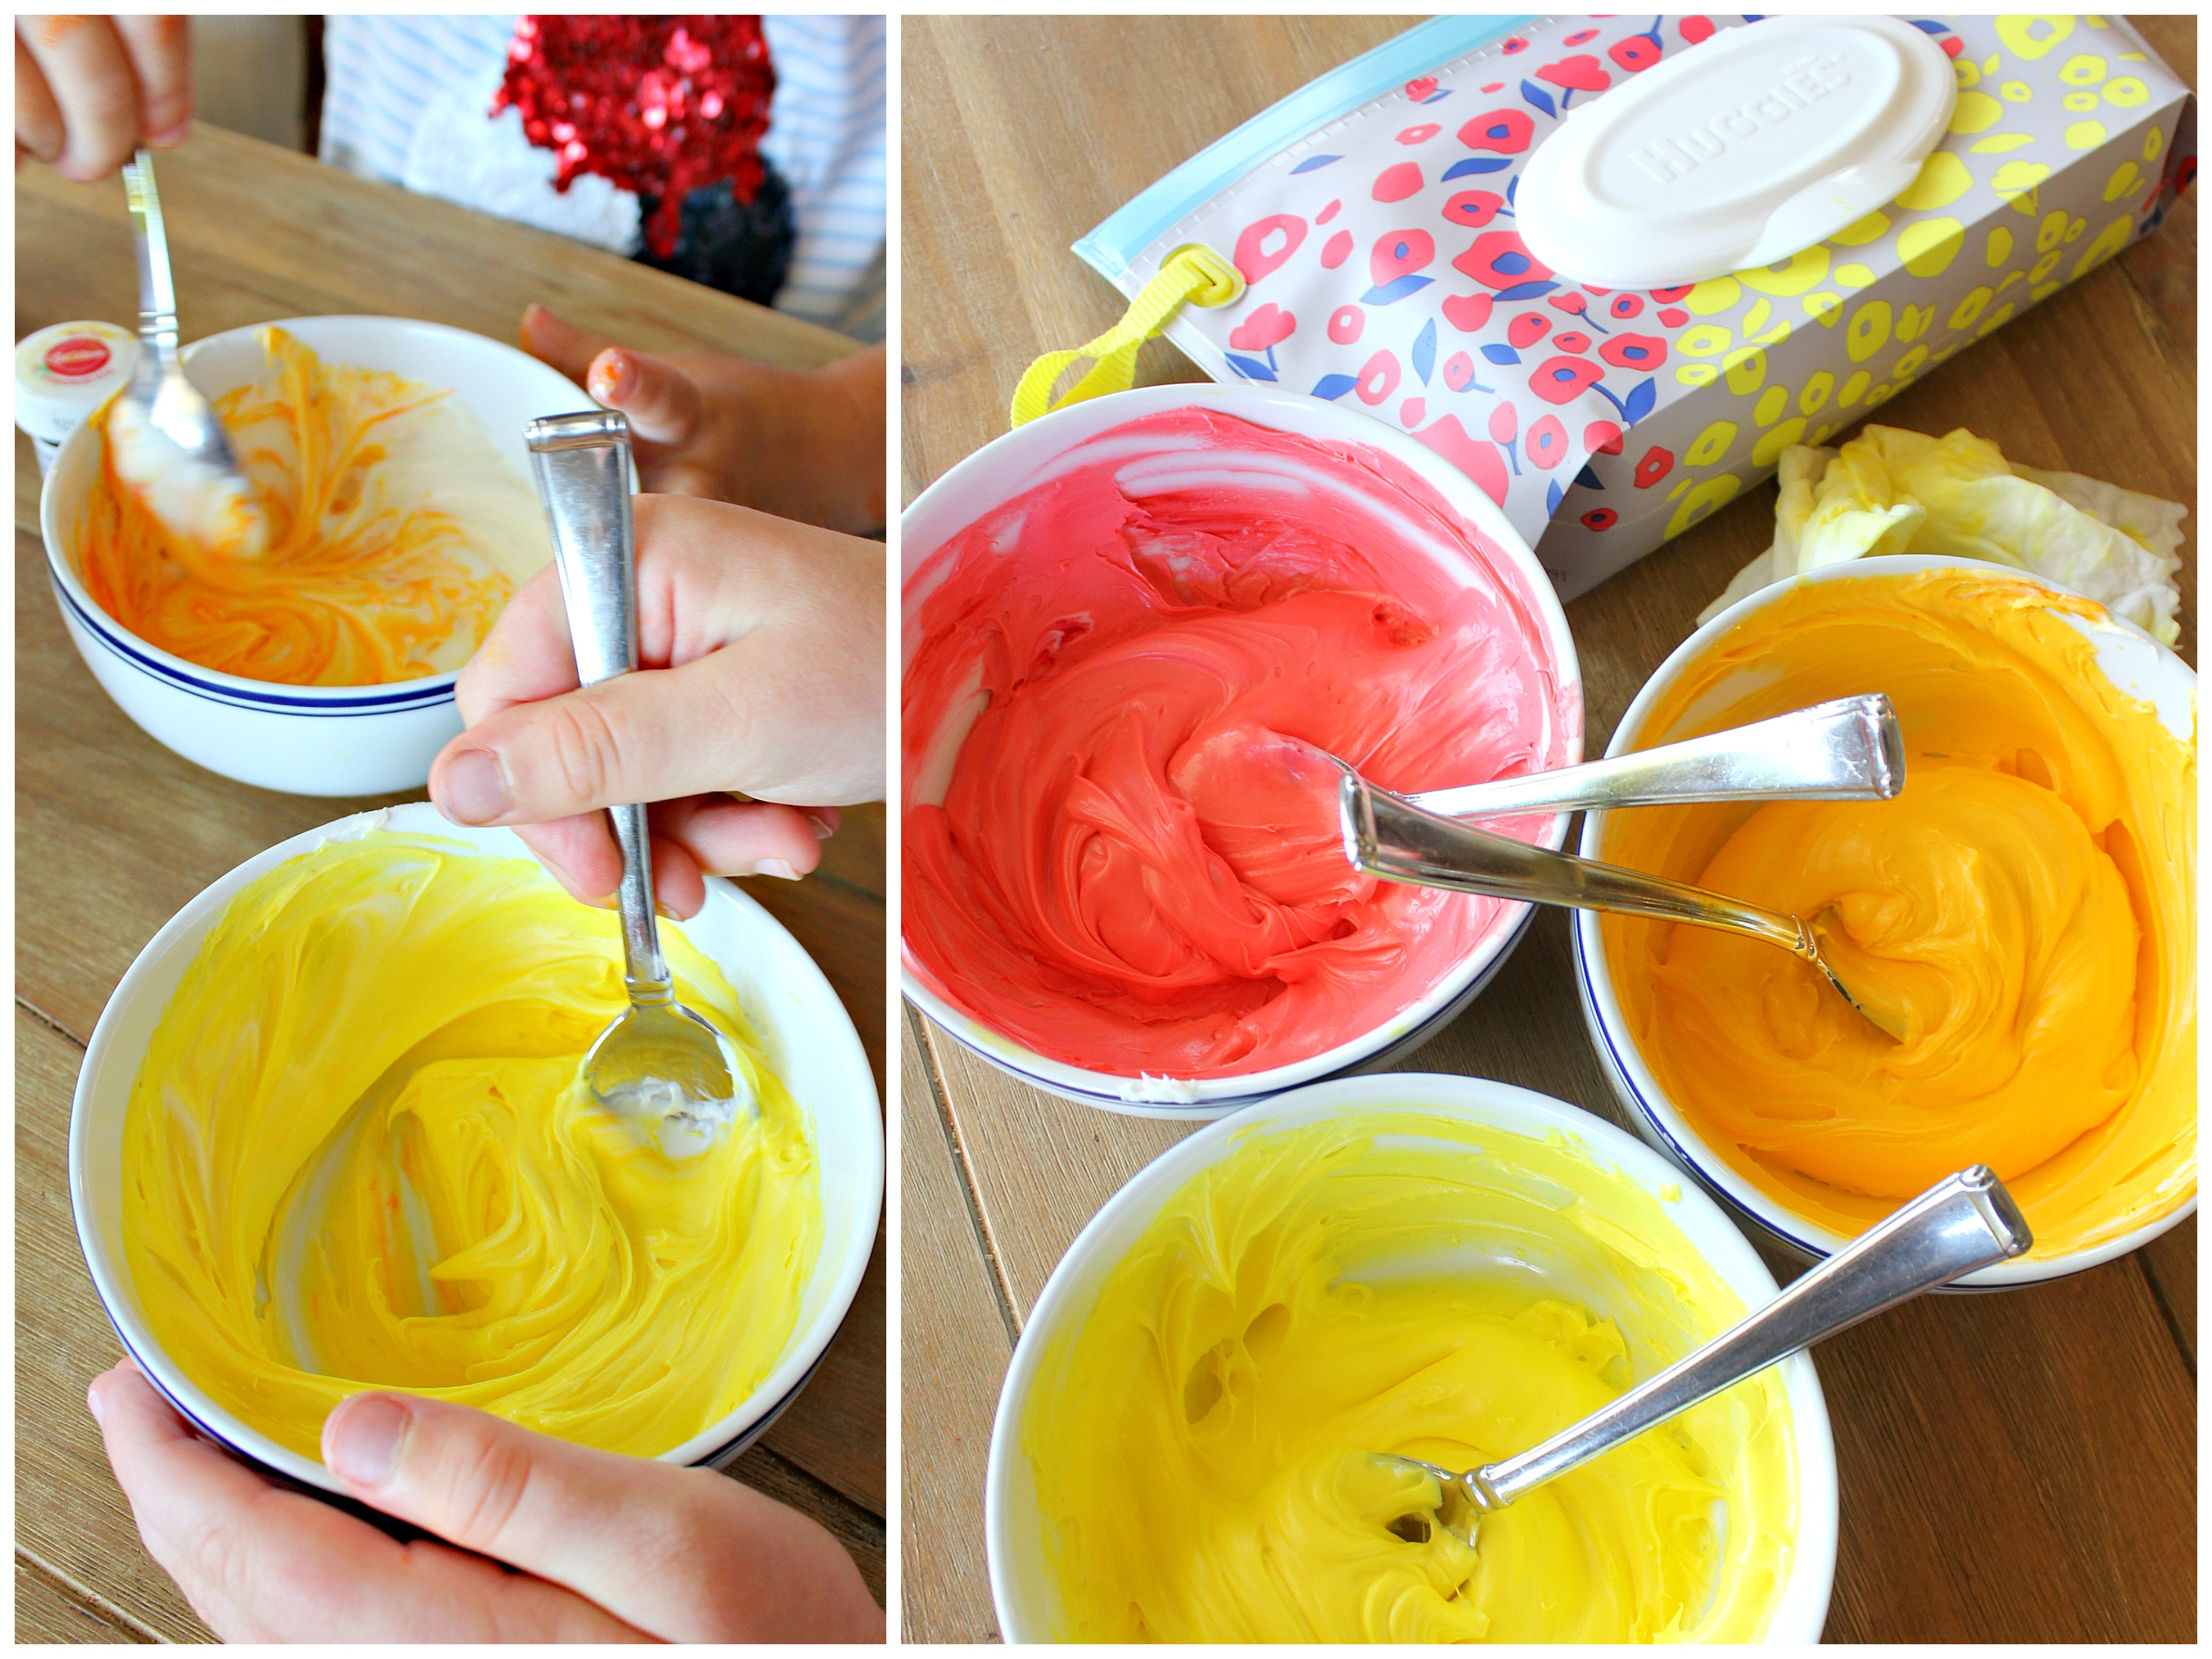 Adorable Olympic torch cupcakes--so fun to make with kids! #HugtheMess